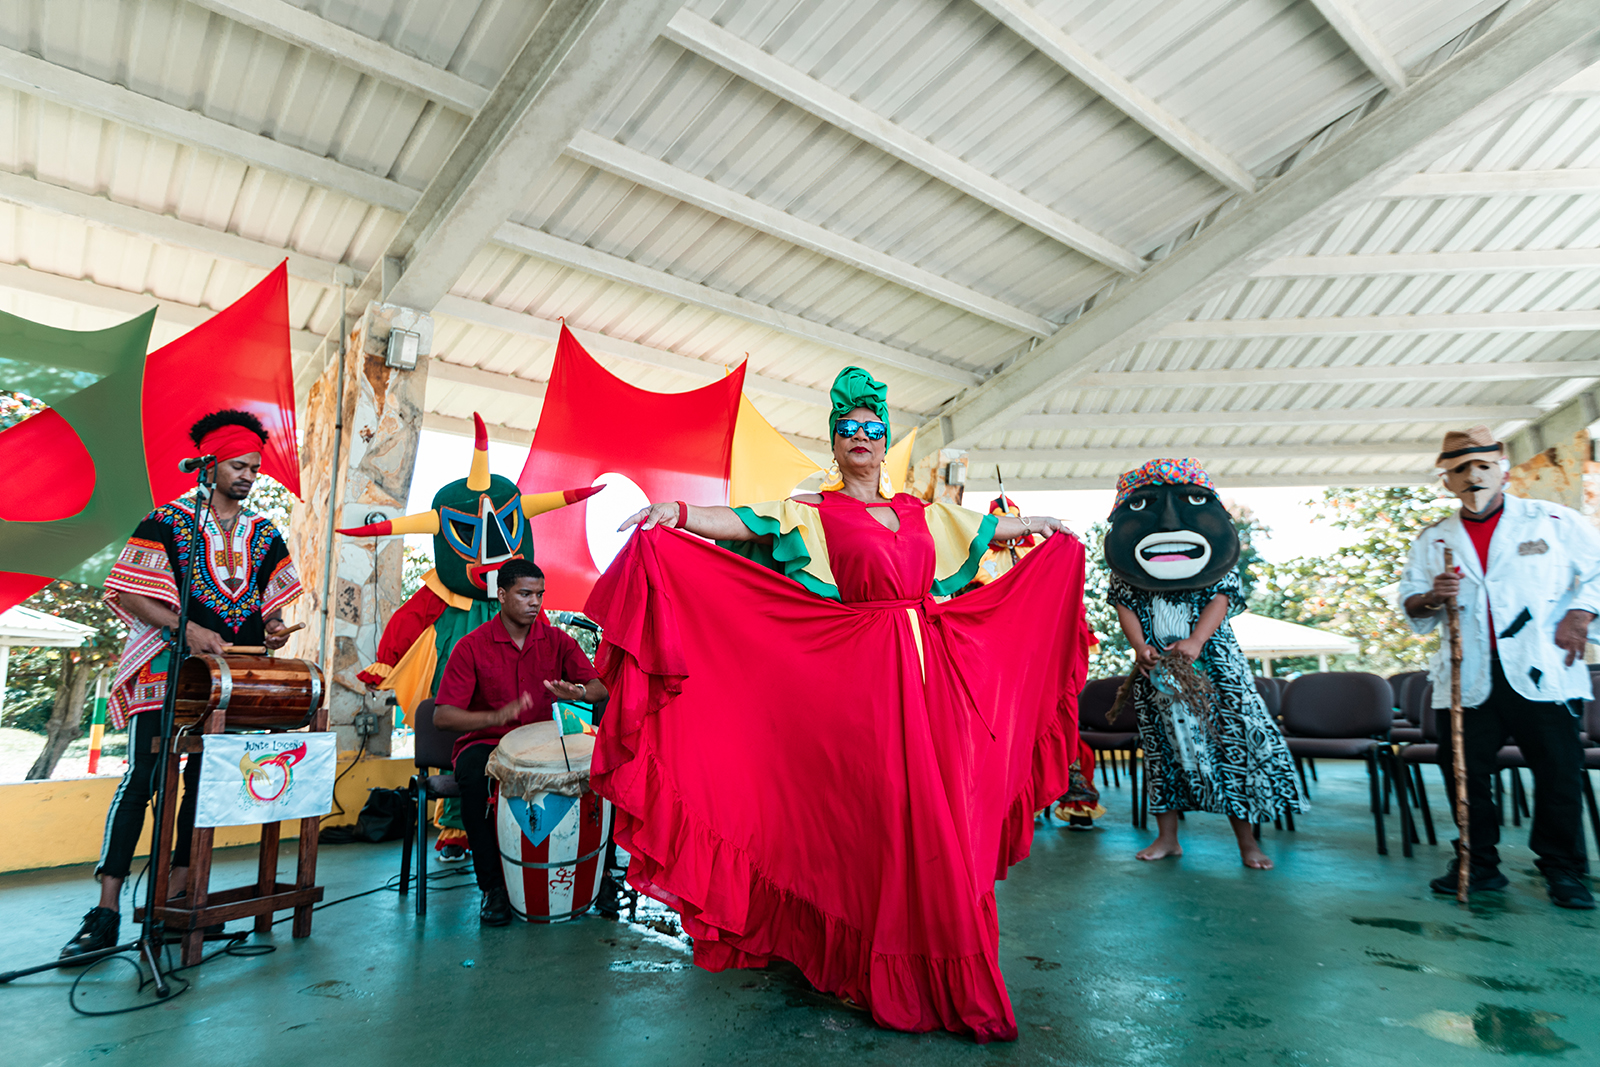 A private bomba show for a group with vegigantes and cabezudos while visiting the town of Loíza.